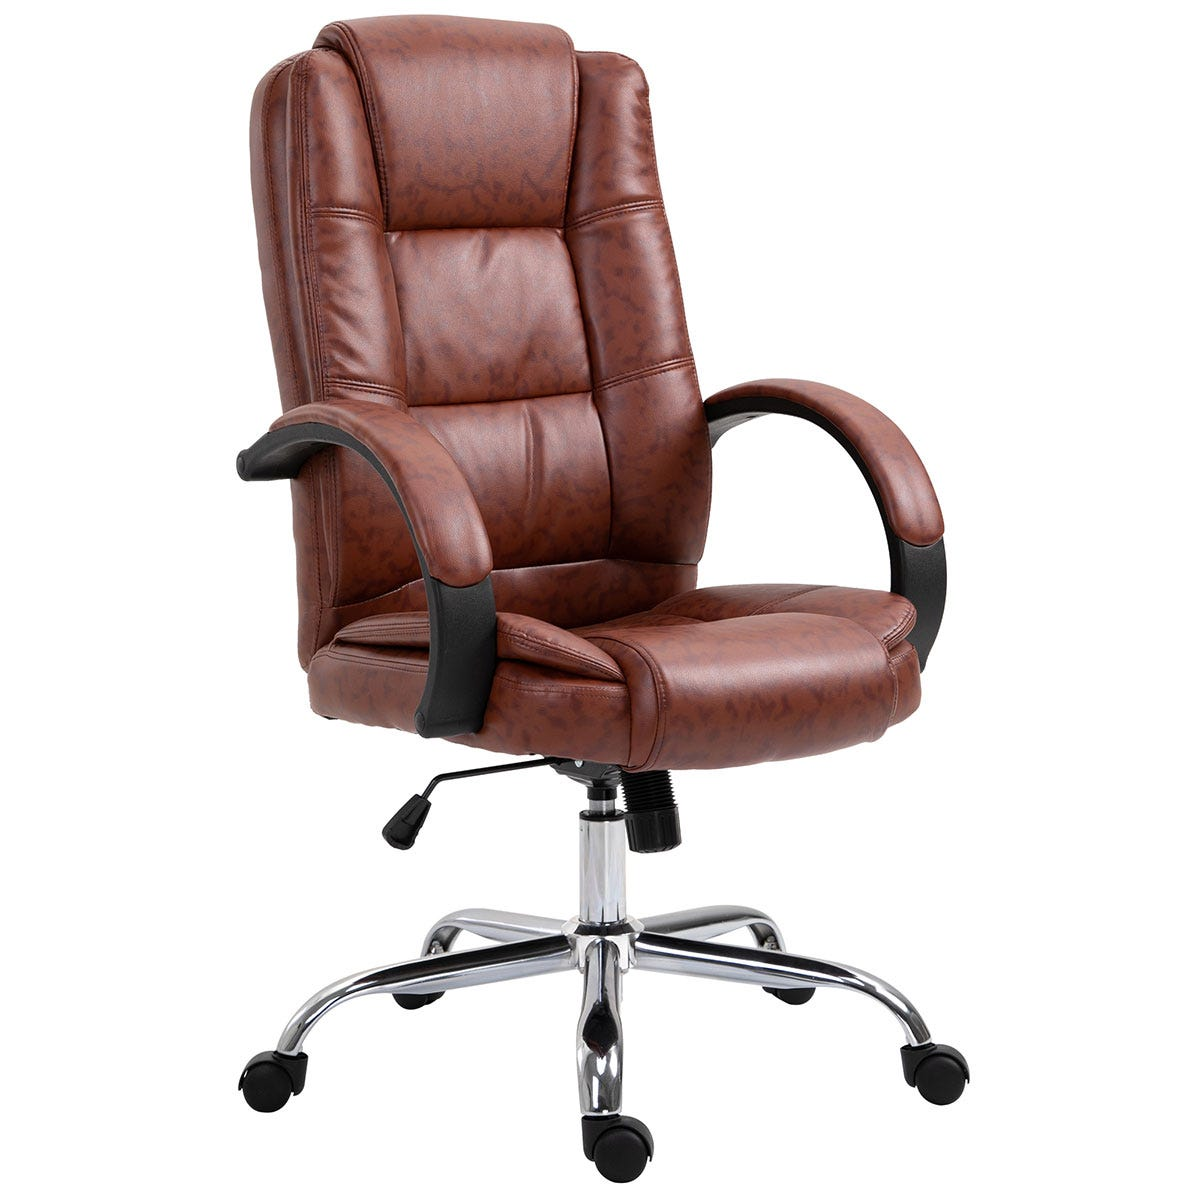 Zennor Tansy PU Leather Office Chair - Brown